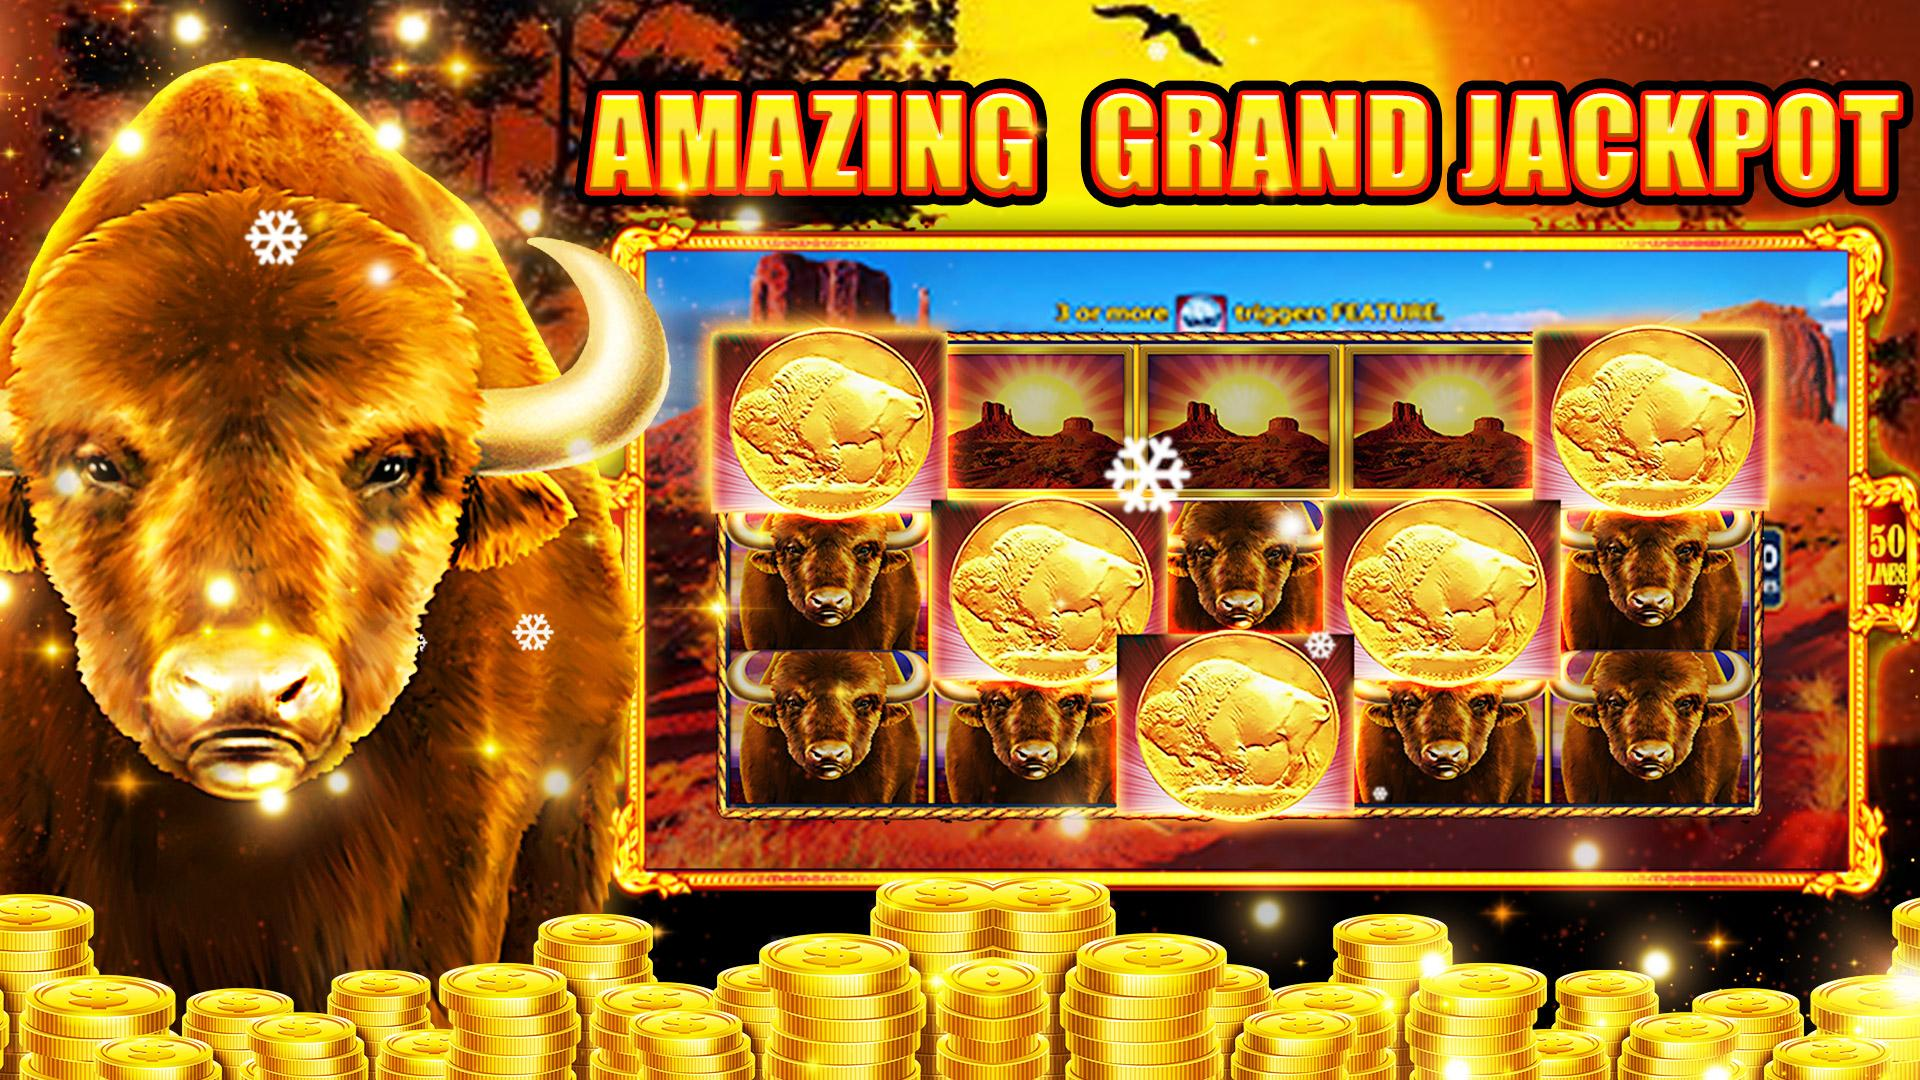 Grand Jackpot Slots Pop Vegas Casino Free Games 1.0.44 Screenshot 19